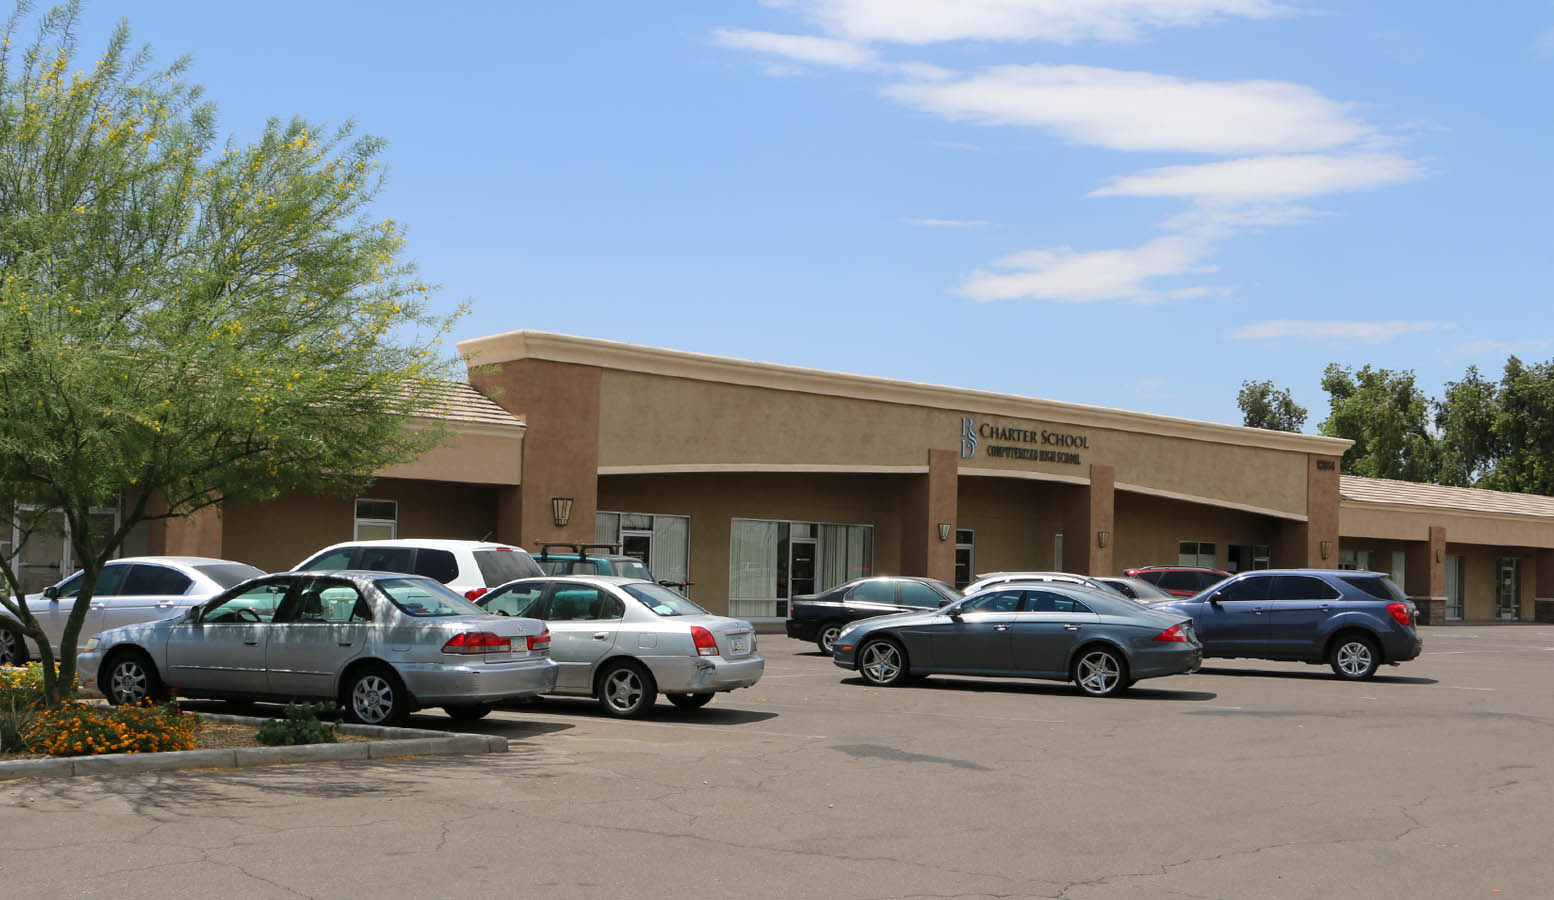 Commercial Property For Lease In Peoria Az